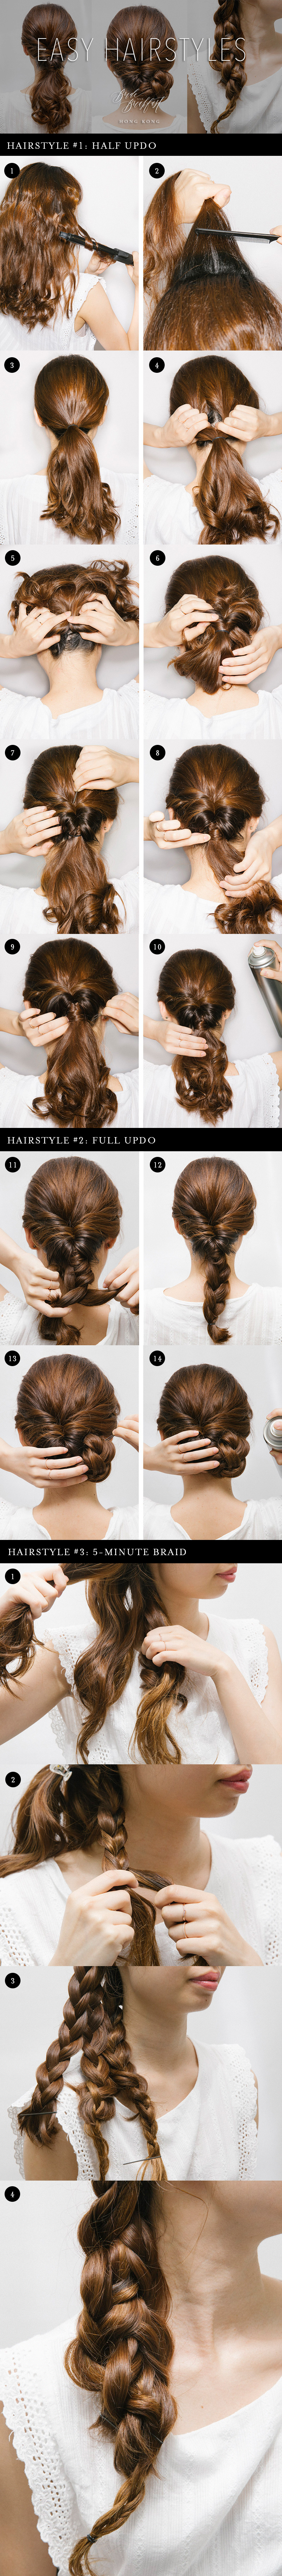 Easy wedding hairstyles by xing macquillage half updo full updo